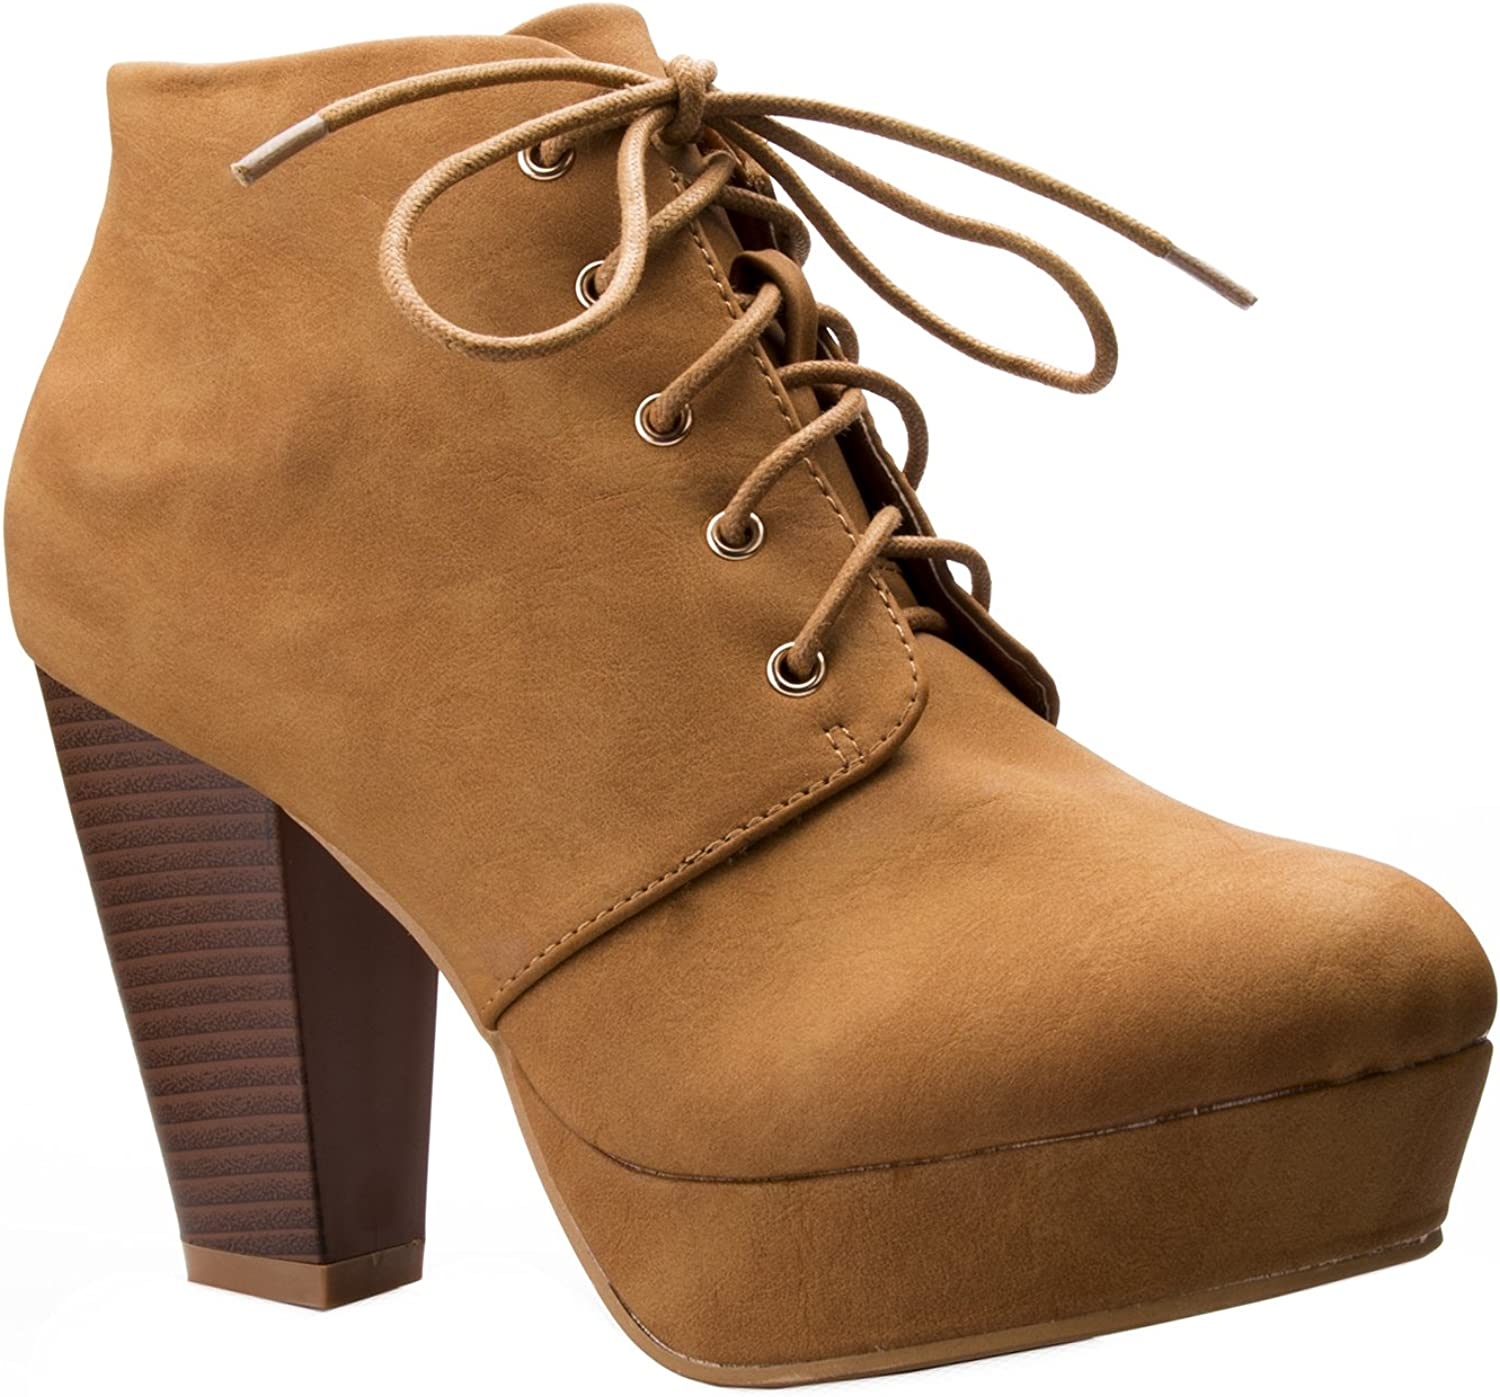 OLIVIA K Women's Lace up Platform Stacked Chunky Heel Bootie